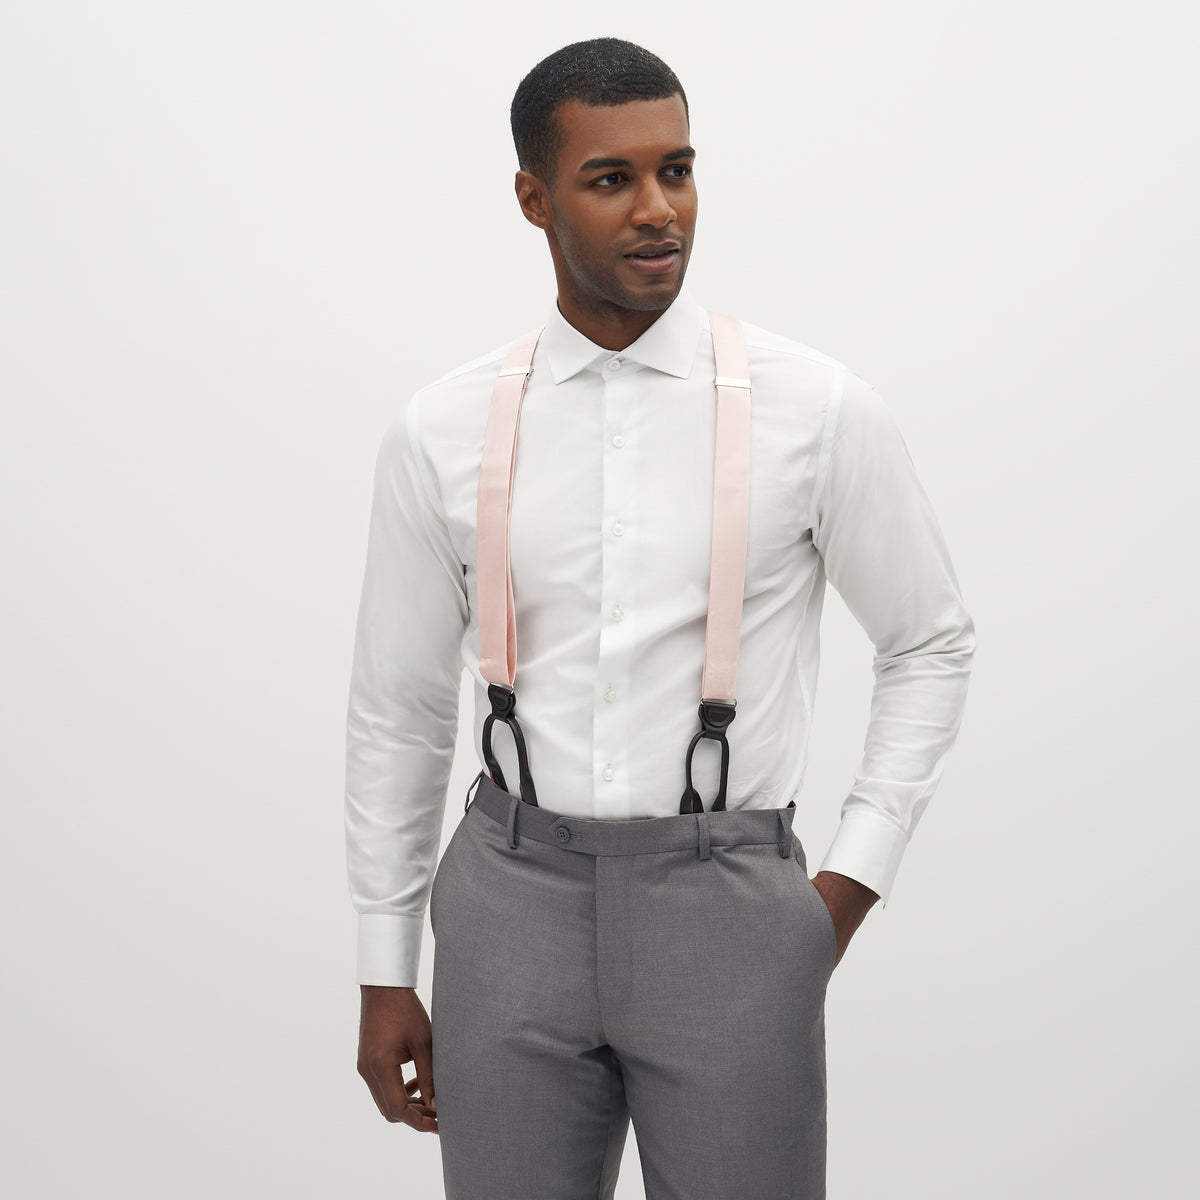 Grosgrain Solid Blush Pink Suspenders